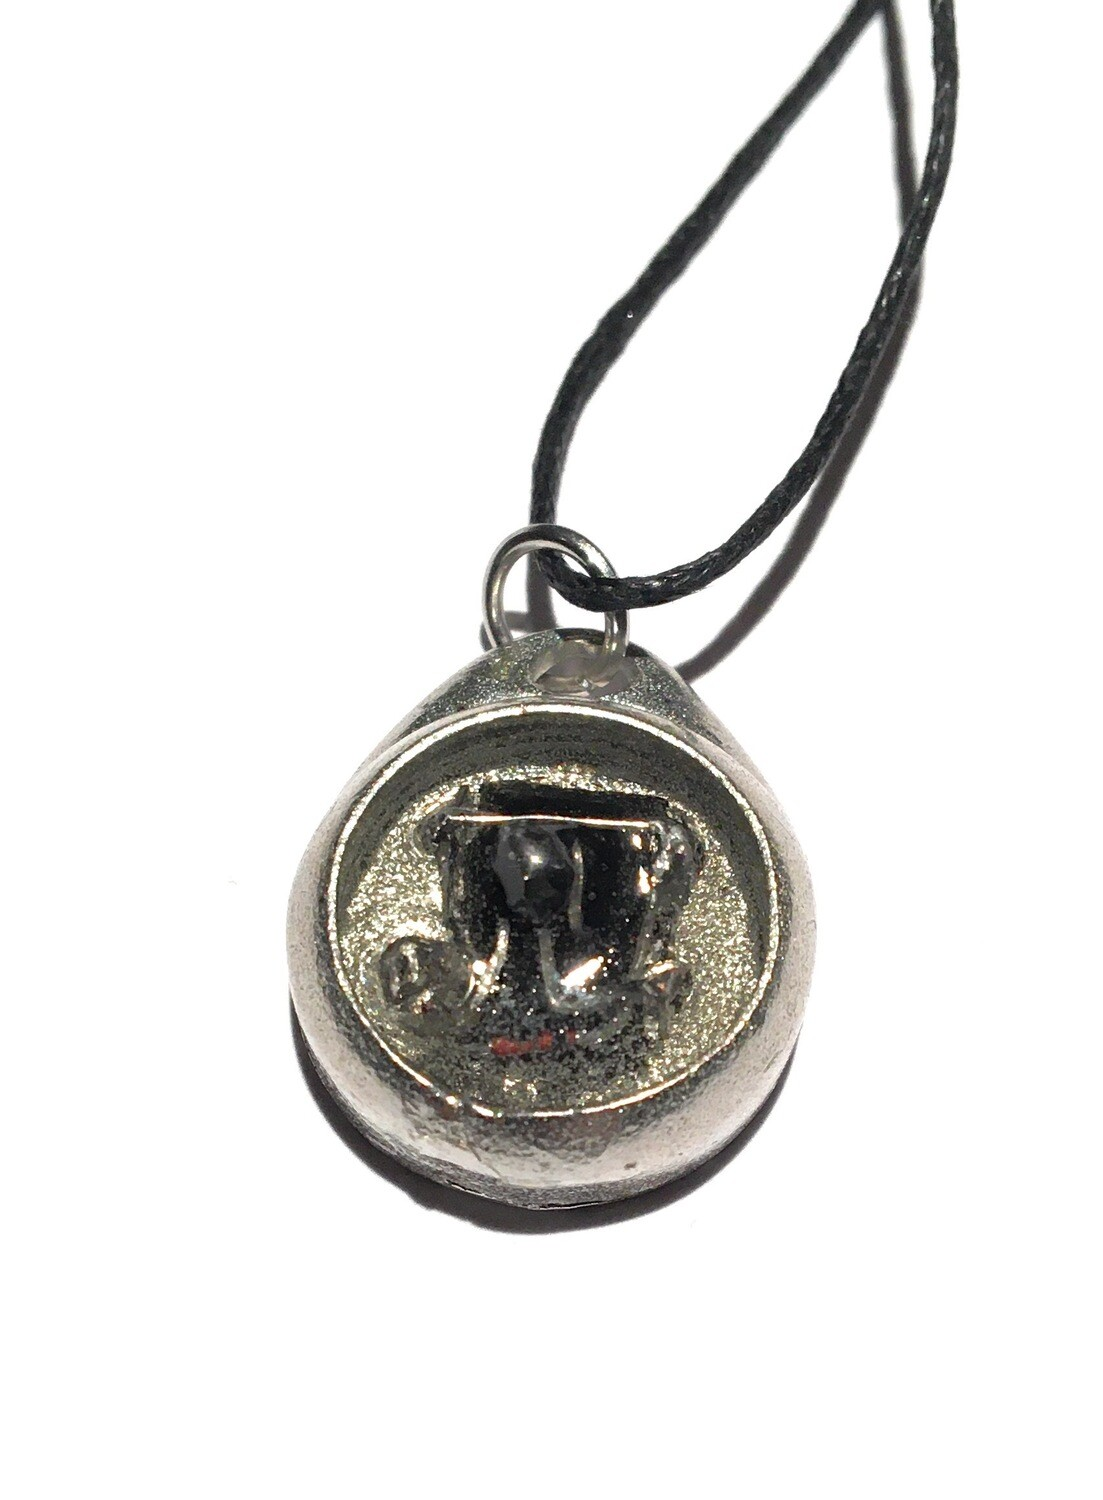 Arcturian SEF Pendant  30% off $120 until MAY 31